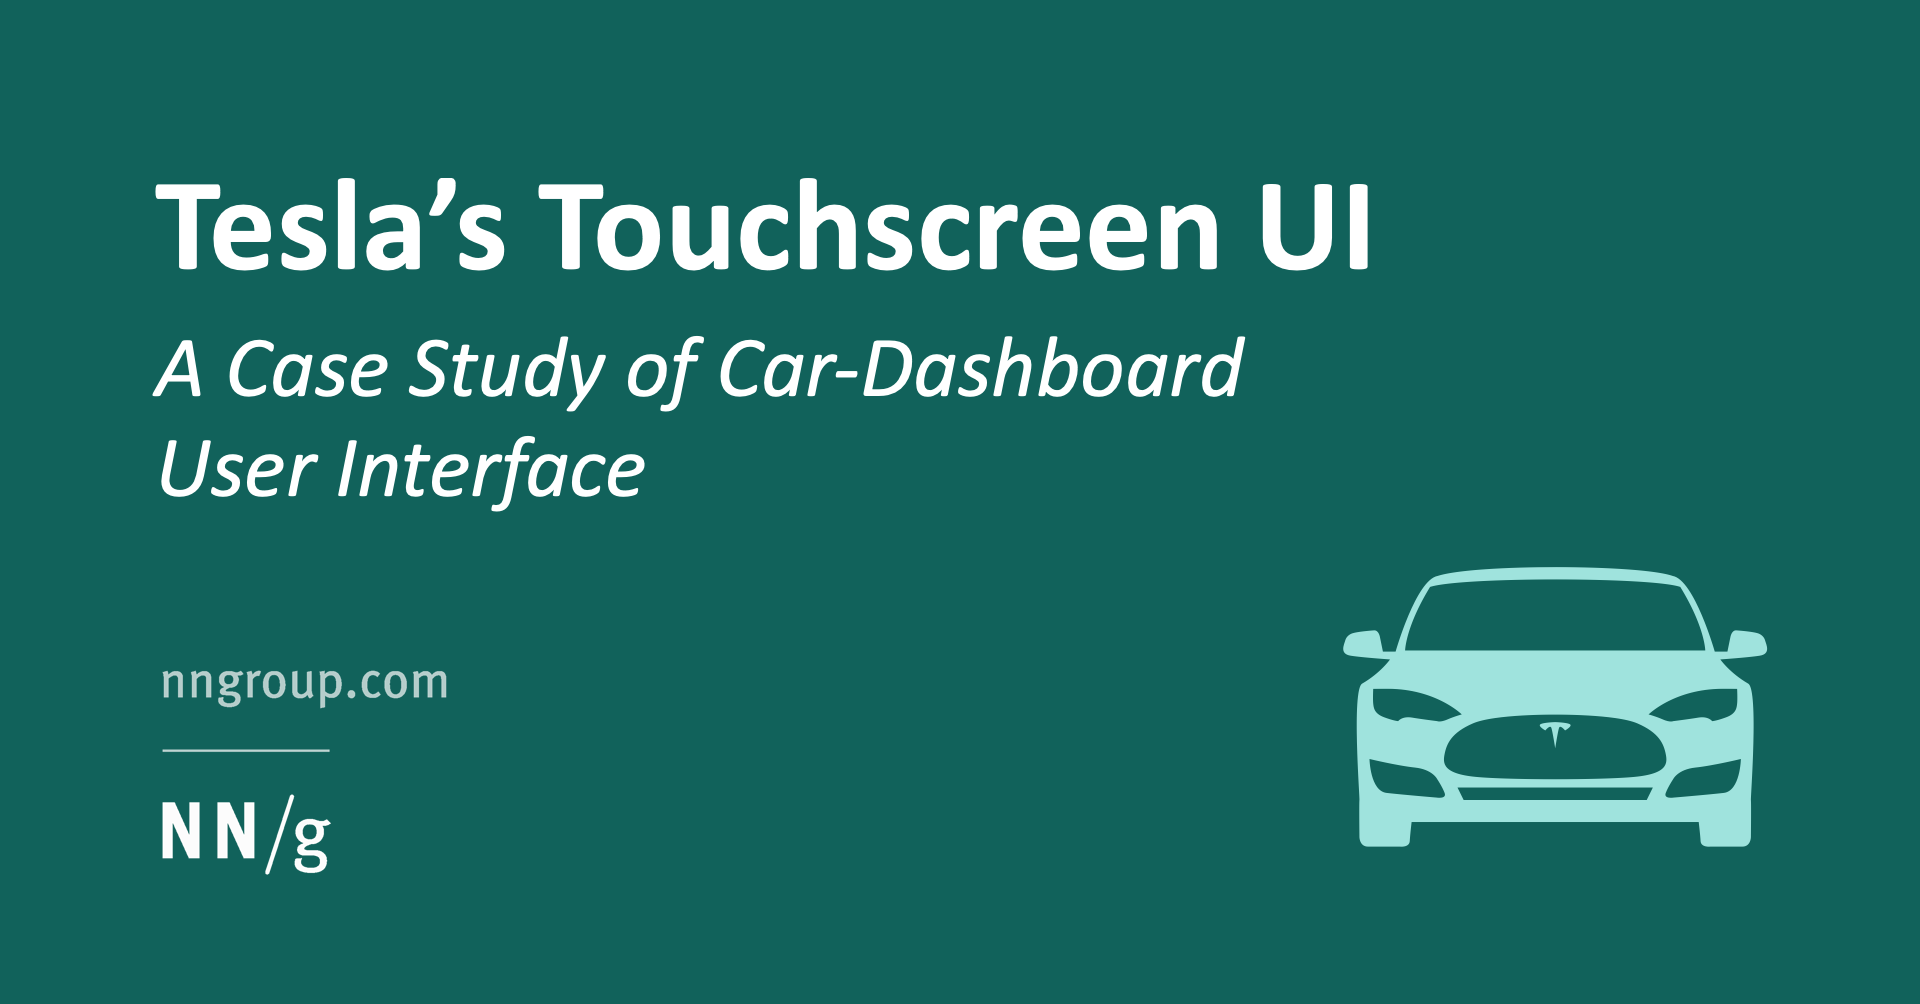 Tesla's Touchscreen UI: A Case Study of Car-Dashboard User Interface